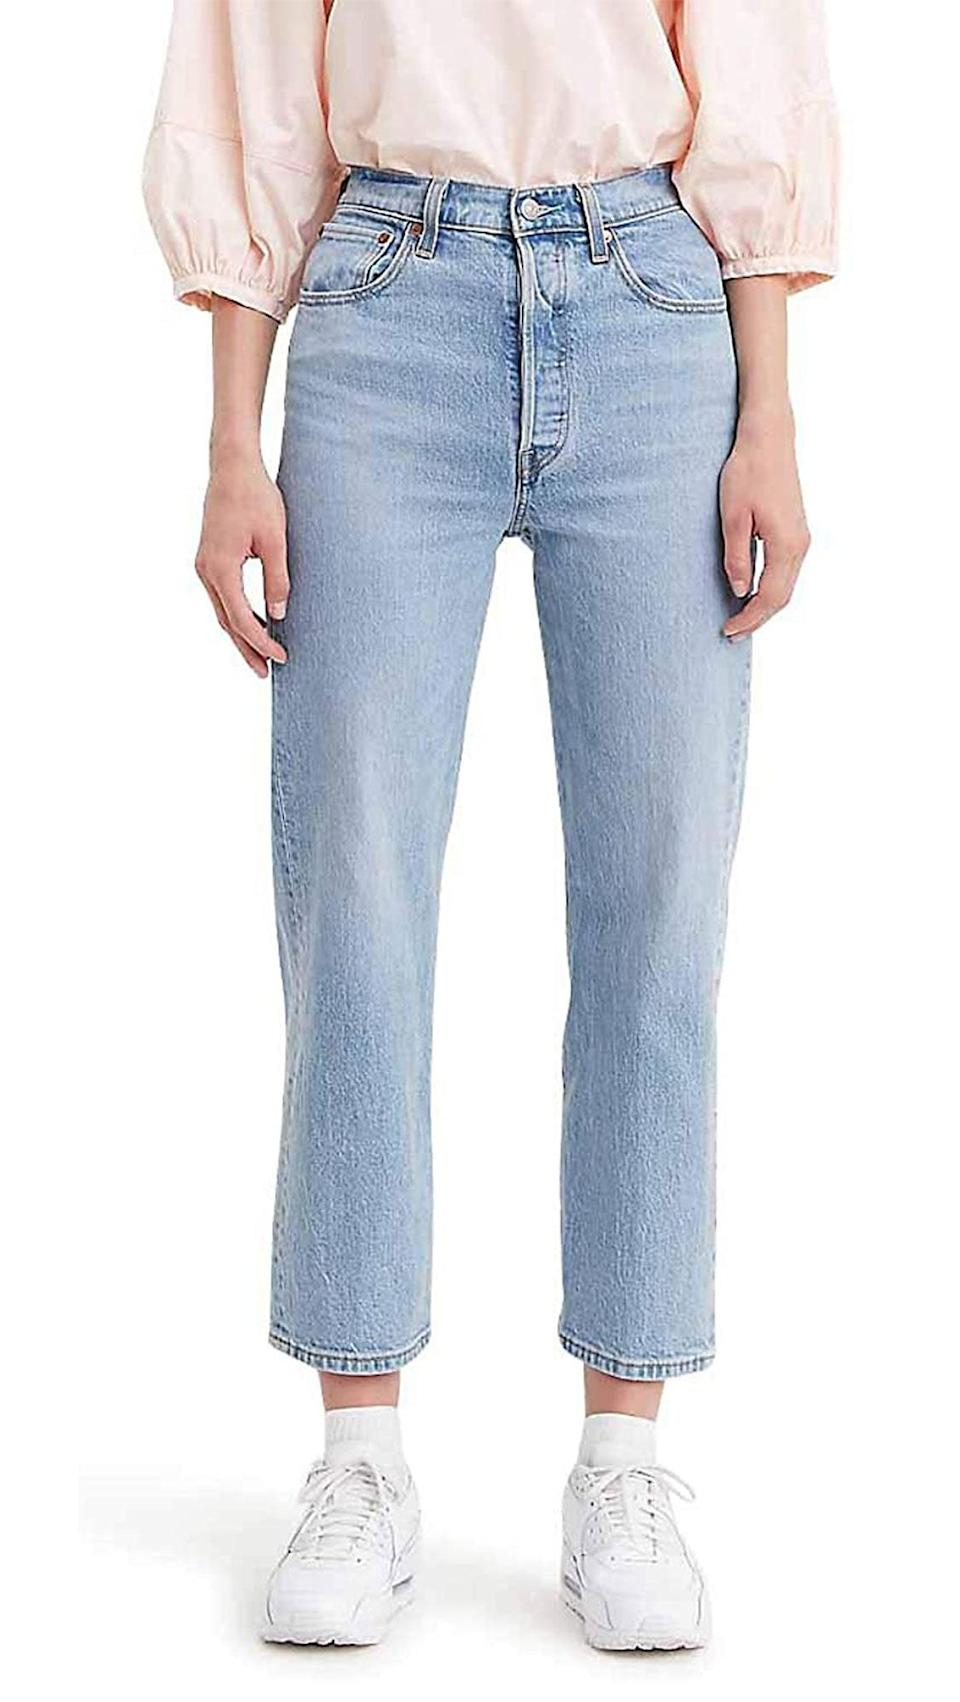 "<em>Glamour</em> editors <a href=""https://www.glamour.com/story/comfortable-jeans-quarantine?mbid=synd_yahoo_rss"" rel=""nofollow noopener"" target=""_blank"" data-ylk=""slk:swear by"" class=""link rapid-noclick-resp"">swear by</a> this super high-rise classic as a reliable wardrobe staple, aka Levi's bread and butter. They're fitted through the hip, straight all the way down, and endlessly versatile. Grab 'em while they're still on sale! $98, Levi's. <a href=""https://www.levi.com/US/en_US/apparel/clothing/bottoms/ribcage-straight-ankle-womens-jeans/p/726930023"" rel=""nofollow noopener"" target=""_blank"" data-ylk=""slk:Get it now!"" class=""link rapid-noclick-resp"">Get it now!</a>"